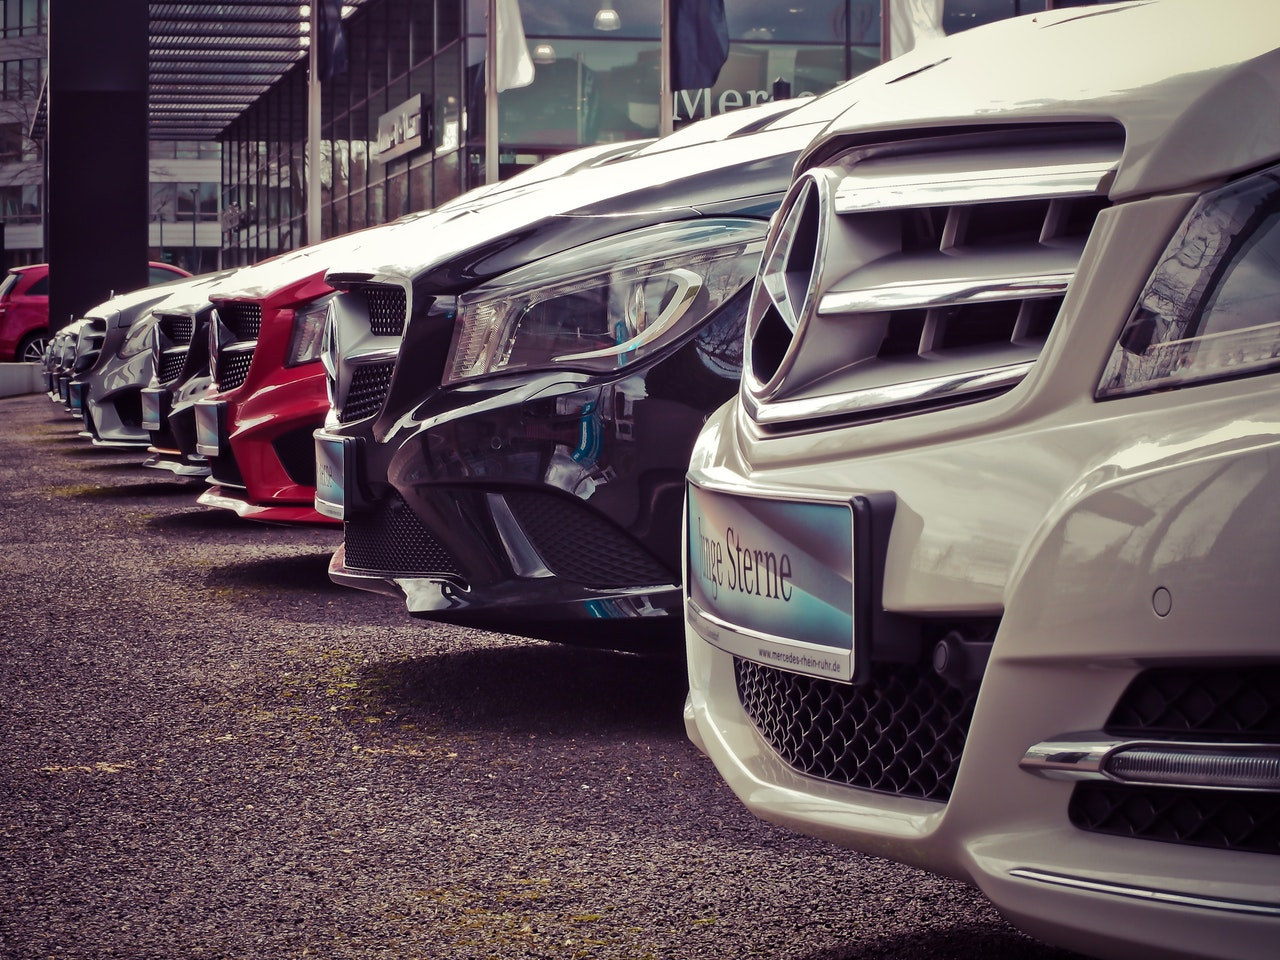 Cars parked in row